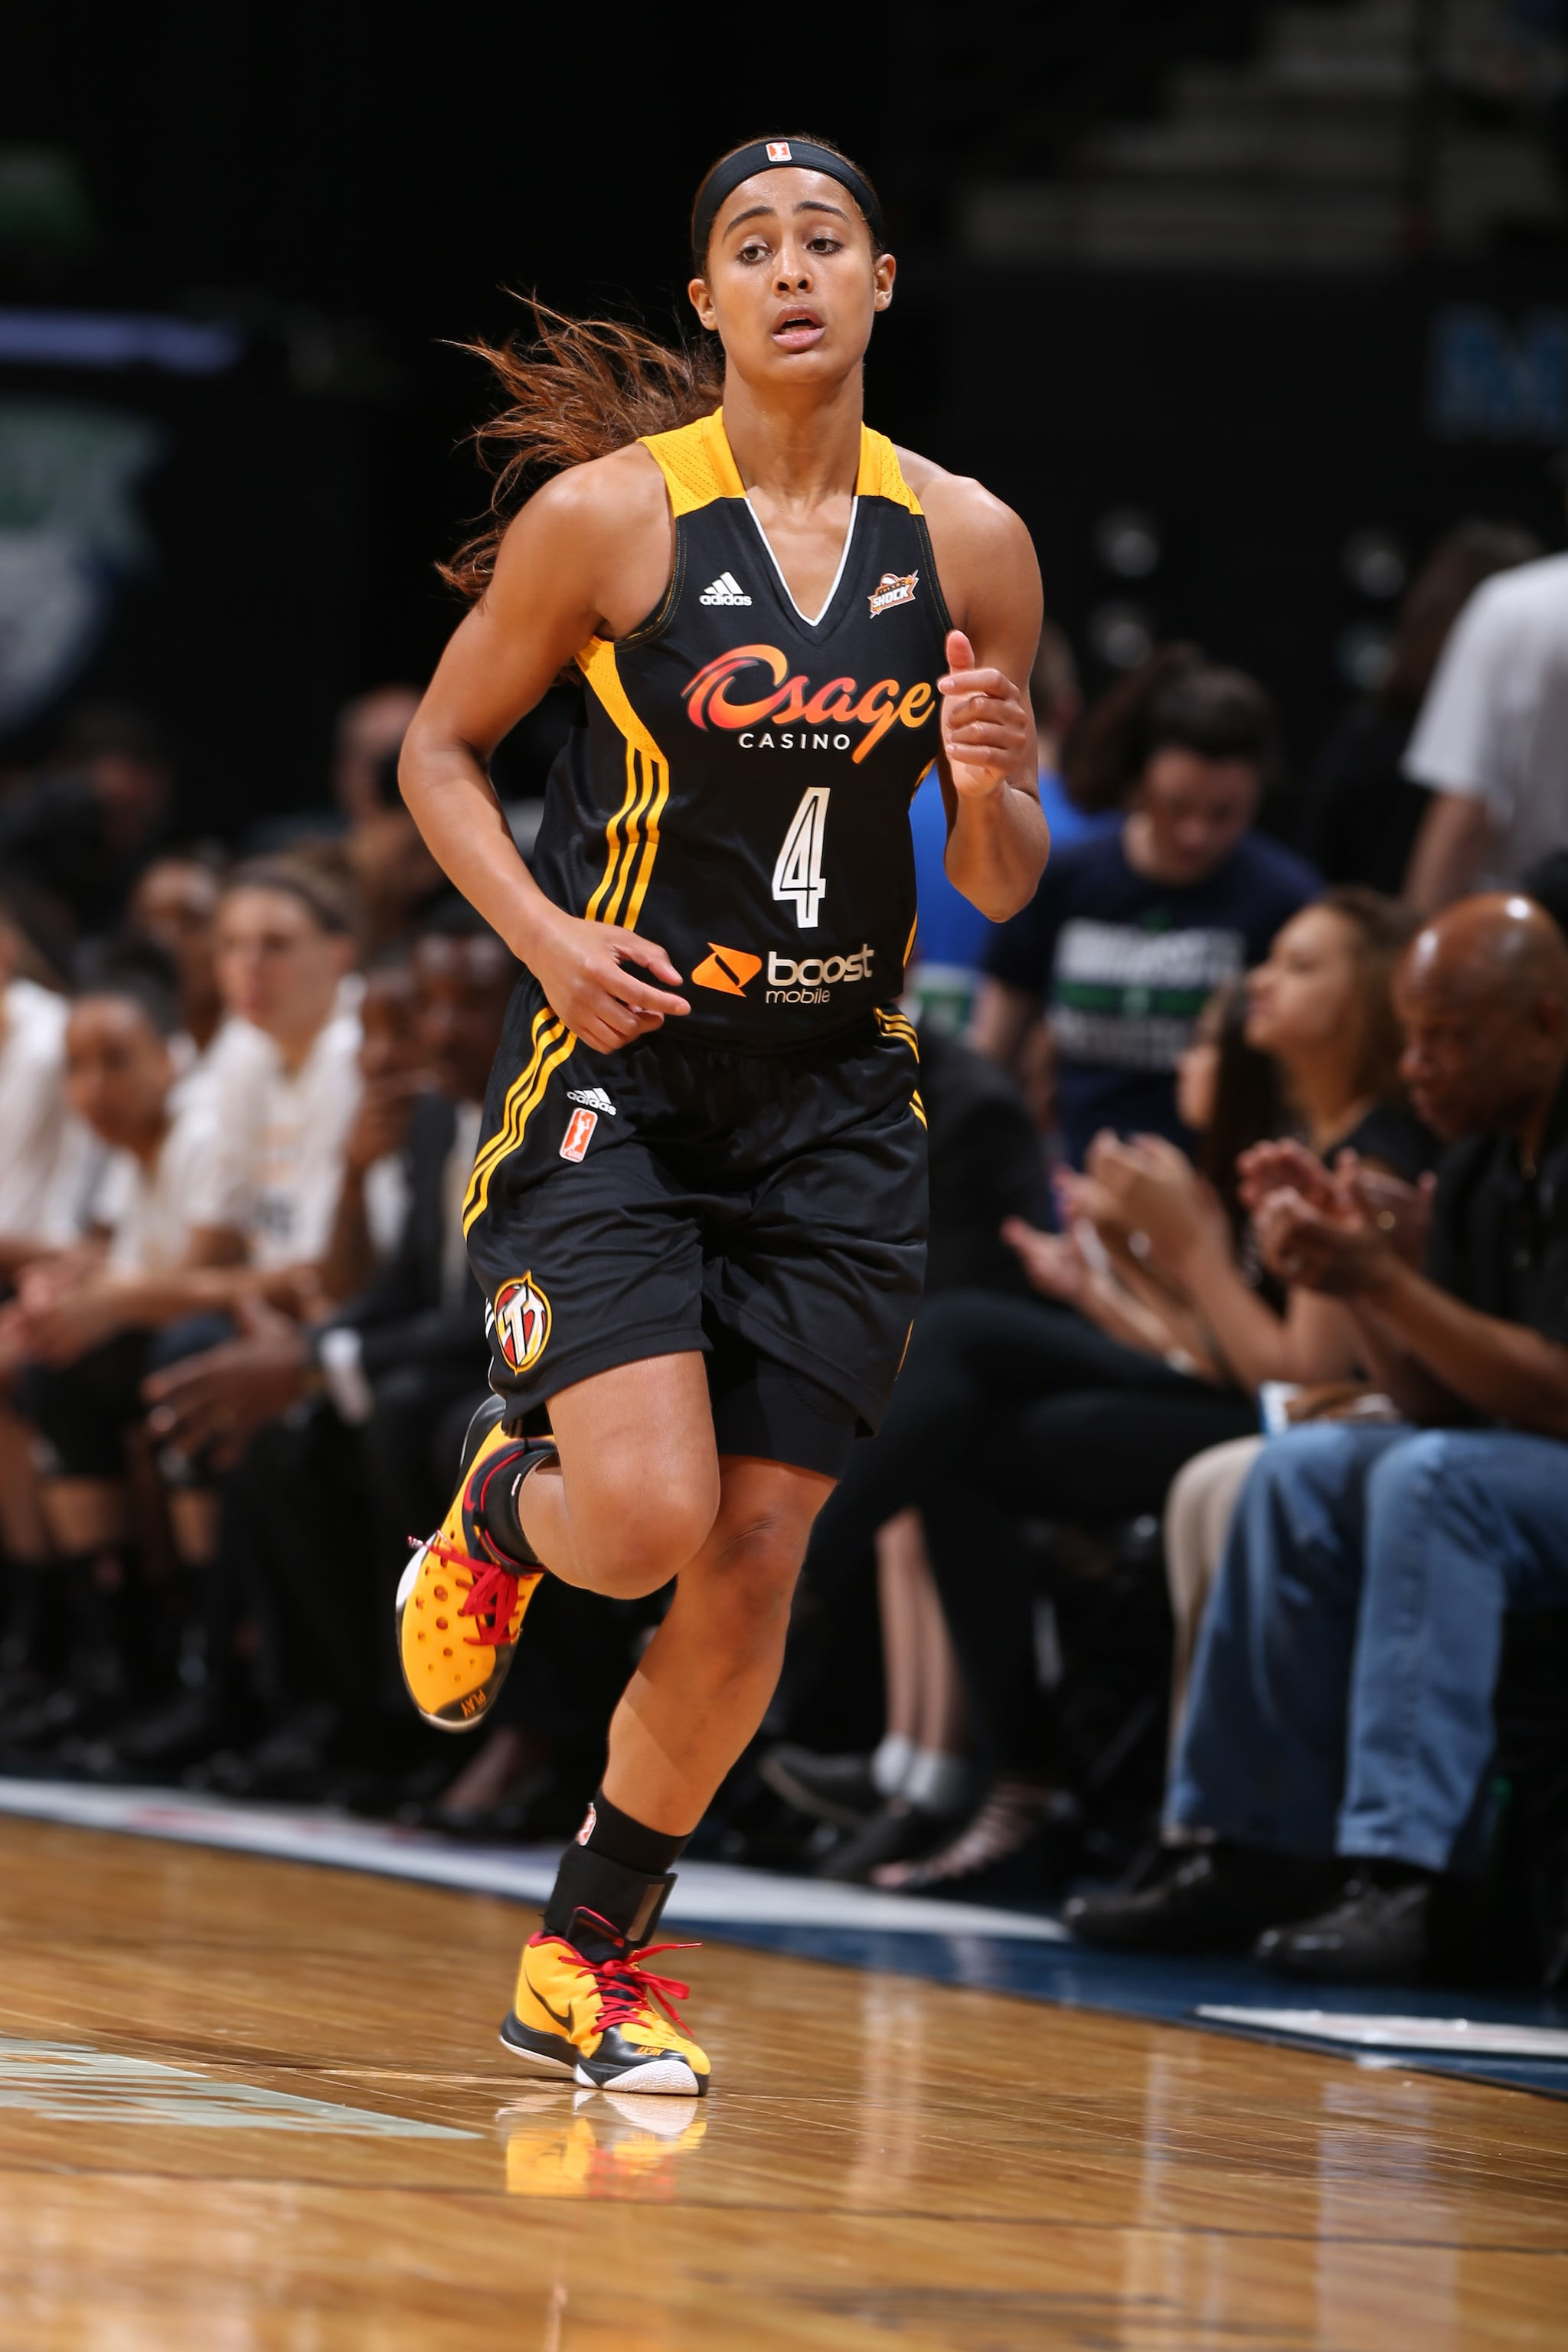 MINNEAPOLIS, MN - JUNE 5:  Skylar Diggins #4 of the Tulsa Shock runs down the court against the Minnesota Lynx during the season opener of their WNBA game on June 5, 2015 at Target Center in Minneapolis, Minnesota. NOTE TO USER: User expressly acknowledges and agrees that, by downloading and or using this Photograph, user is consenting to the terms and conditions of the Getty Images License Agreement. Mandatory Copyright Notice: Copyright 2015 NBAE (Photo by David Sherman/NBAE via Getty Images)